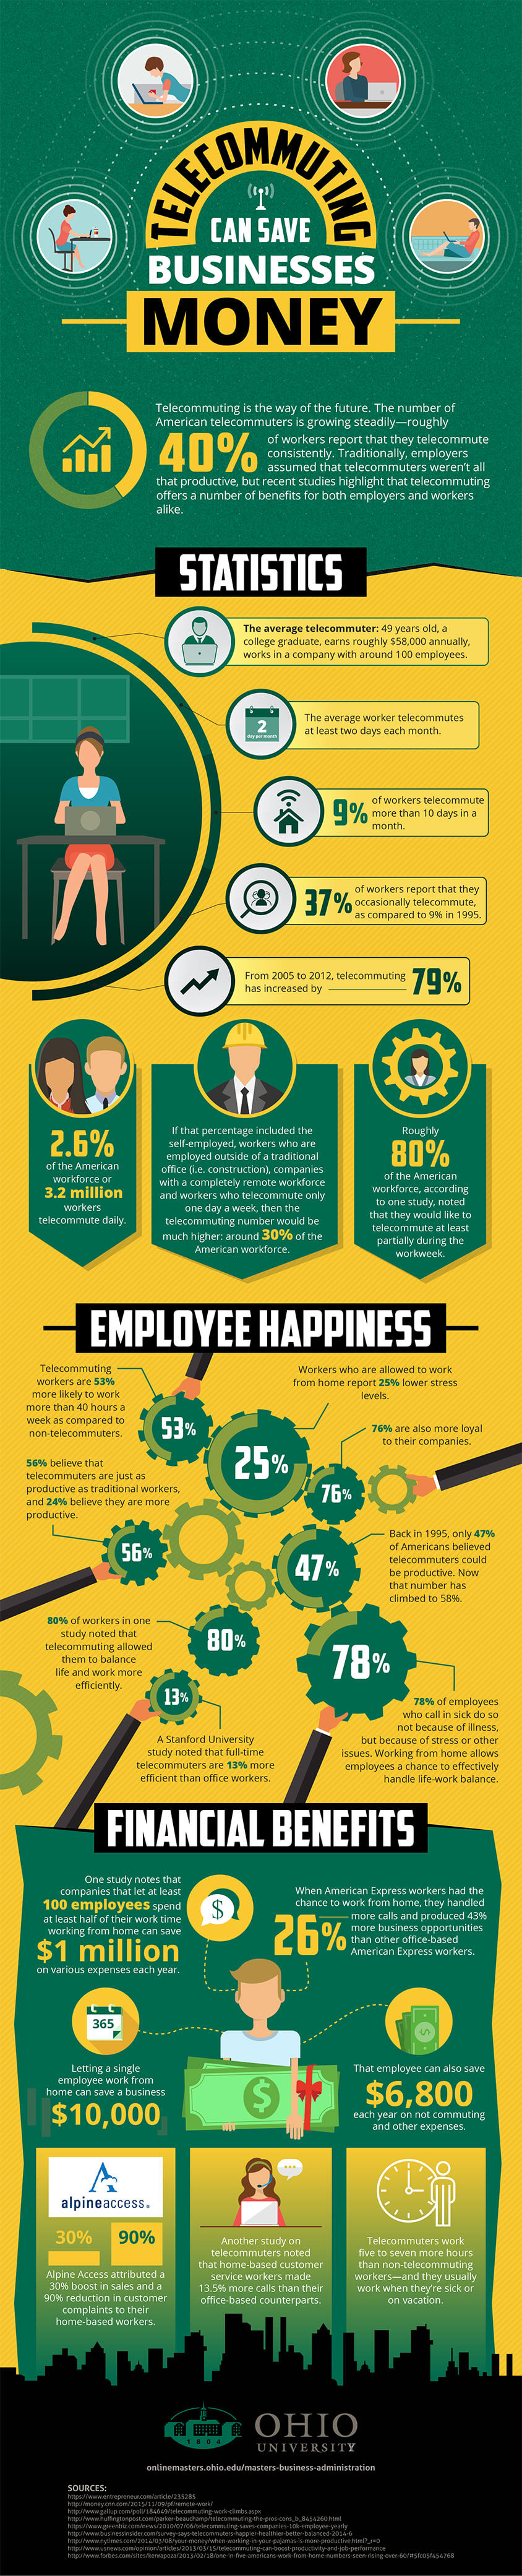 Telecommuting Can Save Businesses Money infographic